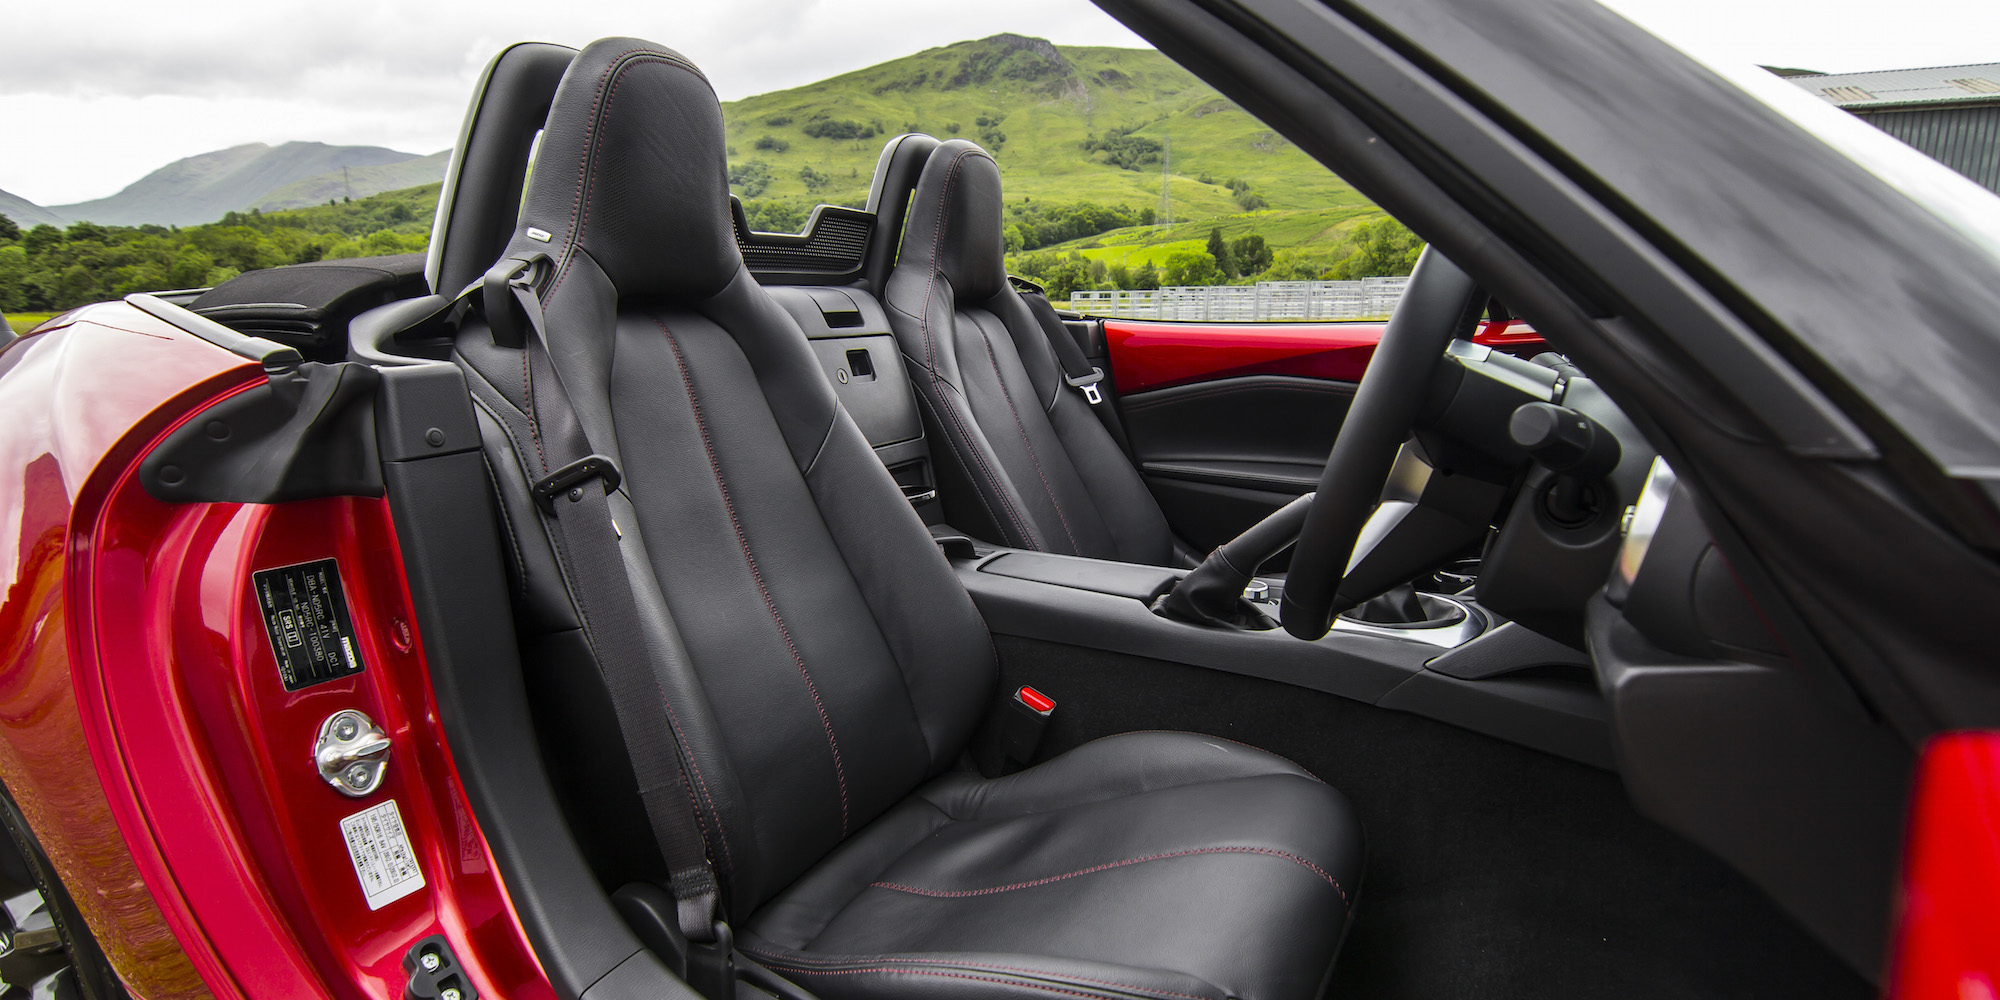 2016 Mazda Mx 5 Cockpit Seats Interior (Photo 16 of 31)